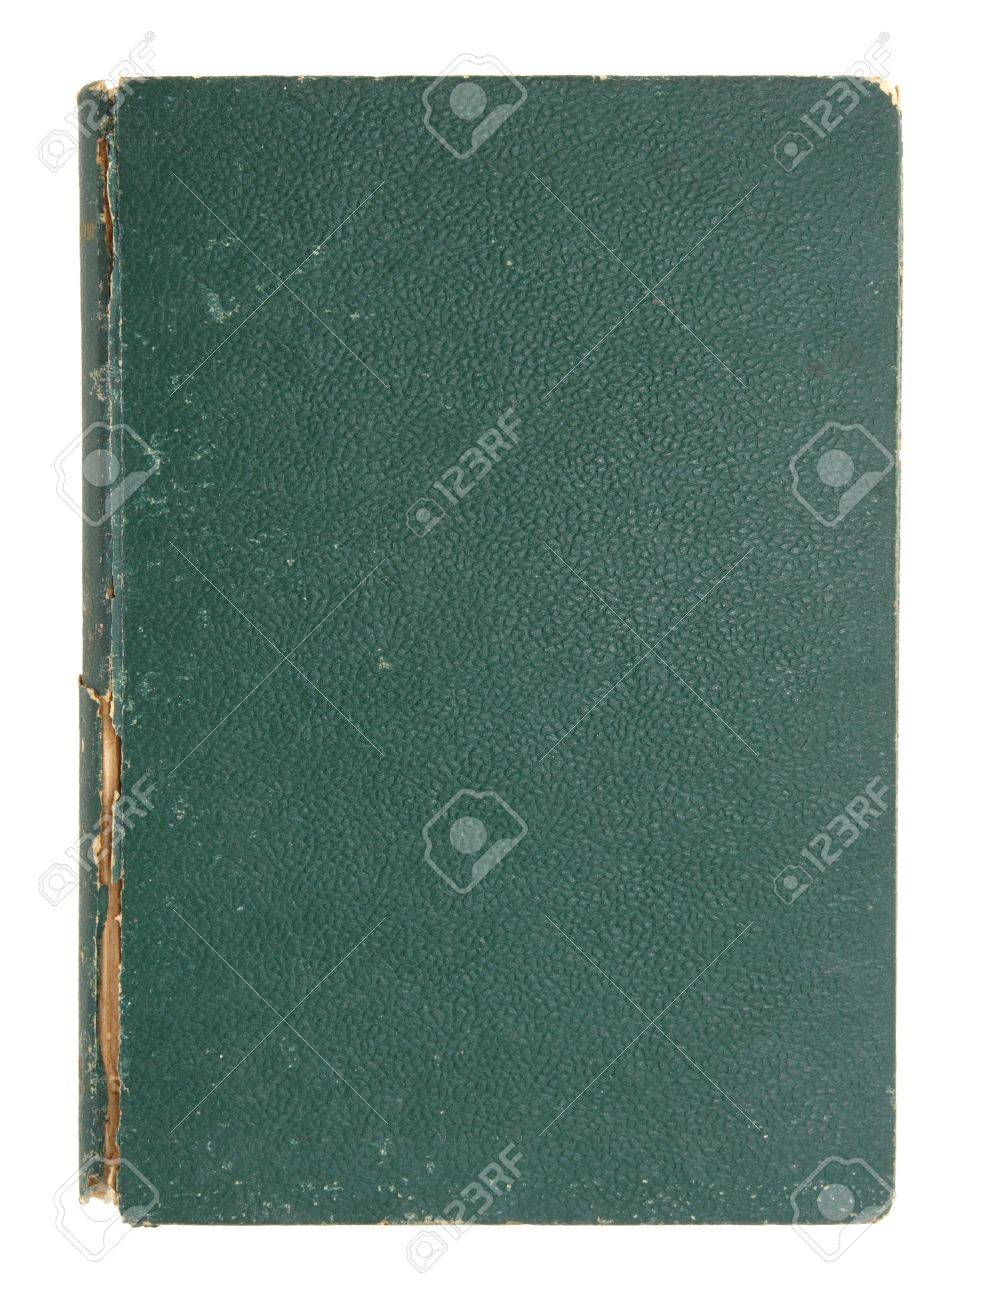 old leather book cover isolated on white Stock Photo - 10869019